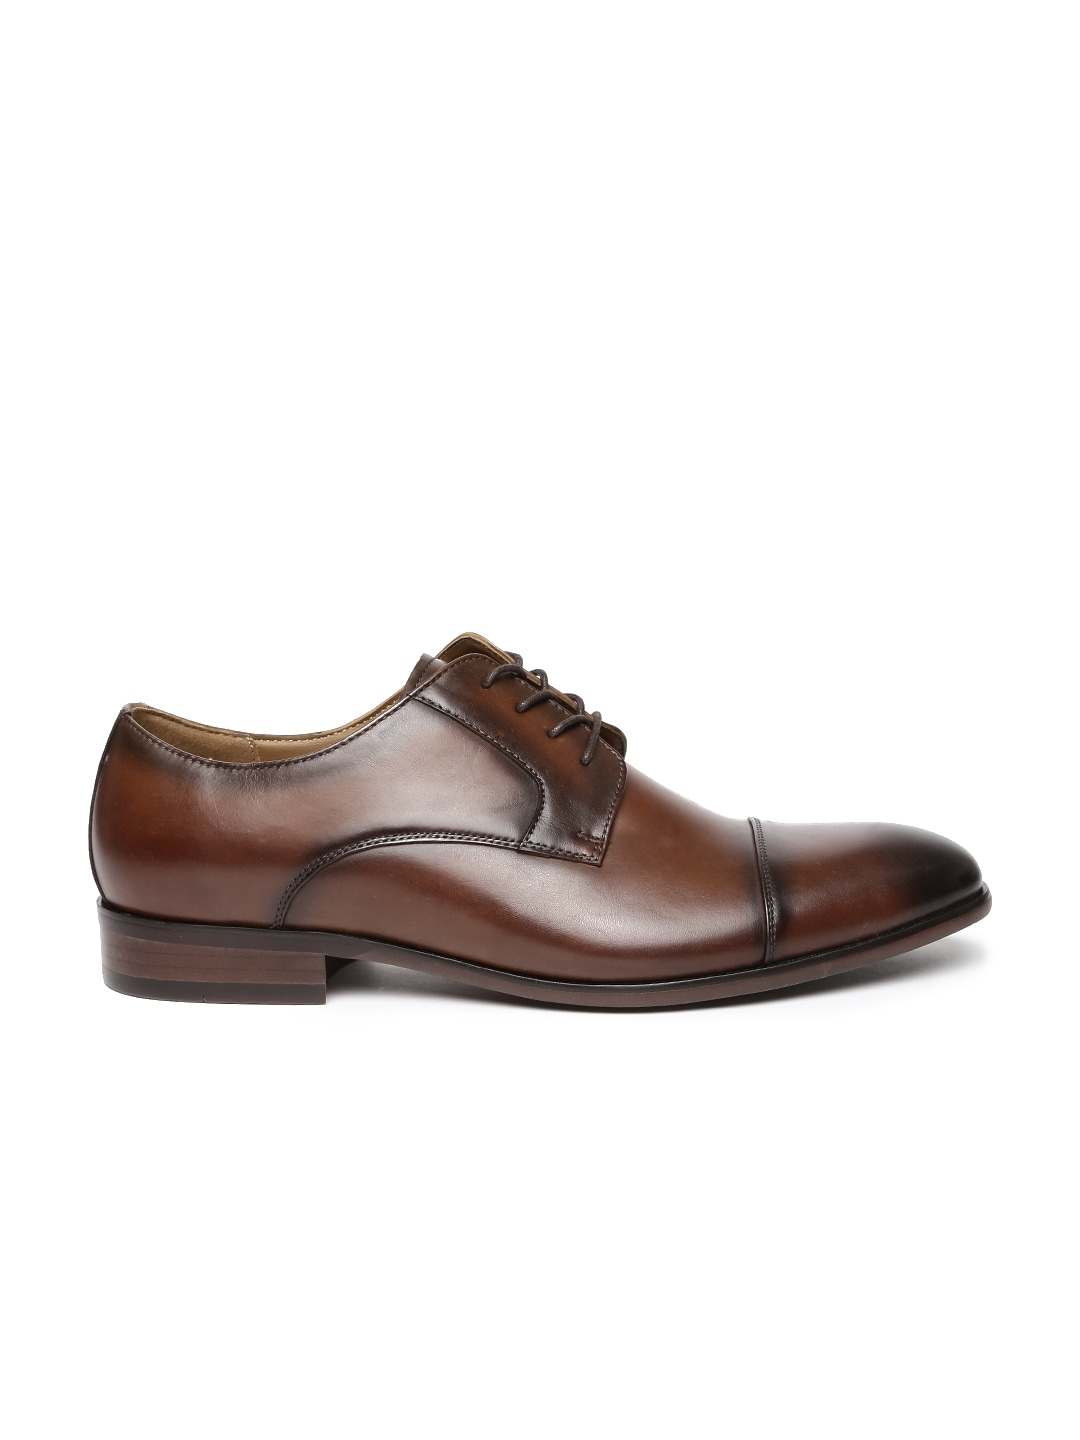 3eba3fe95ed Aldo myn1581748 Men Brown Galerrang Leather Derbys - Best Price ...